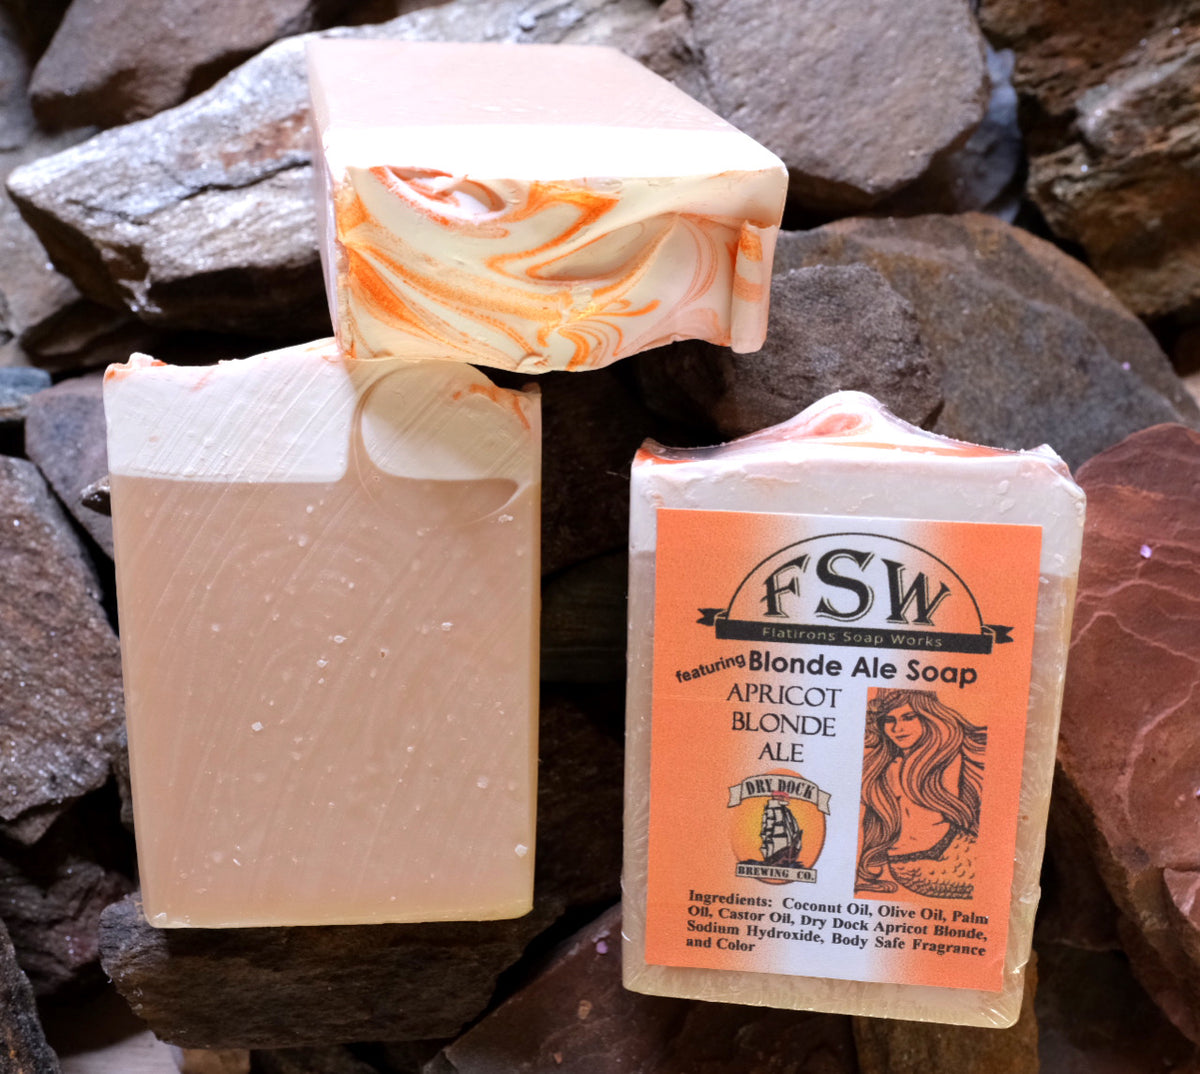 Apricot Blonde Ale 🍺 Soap